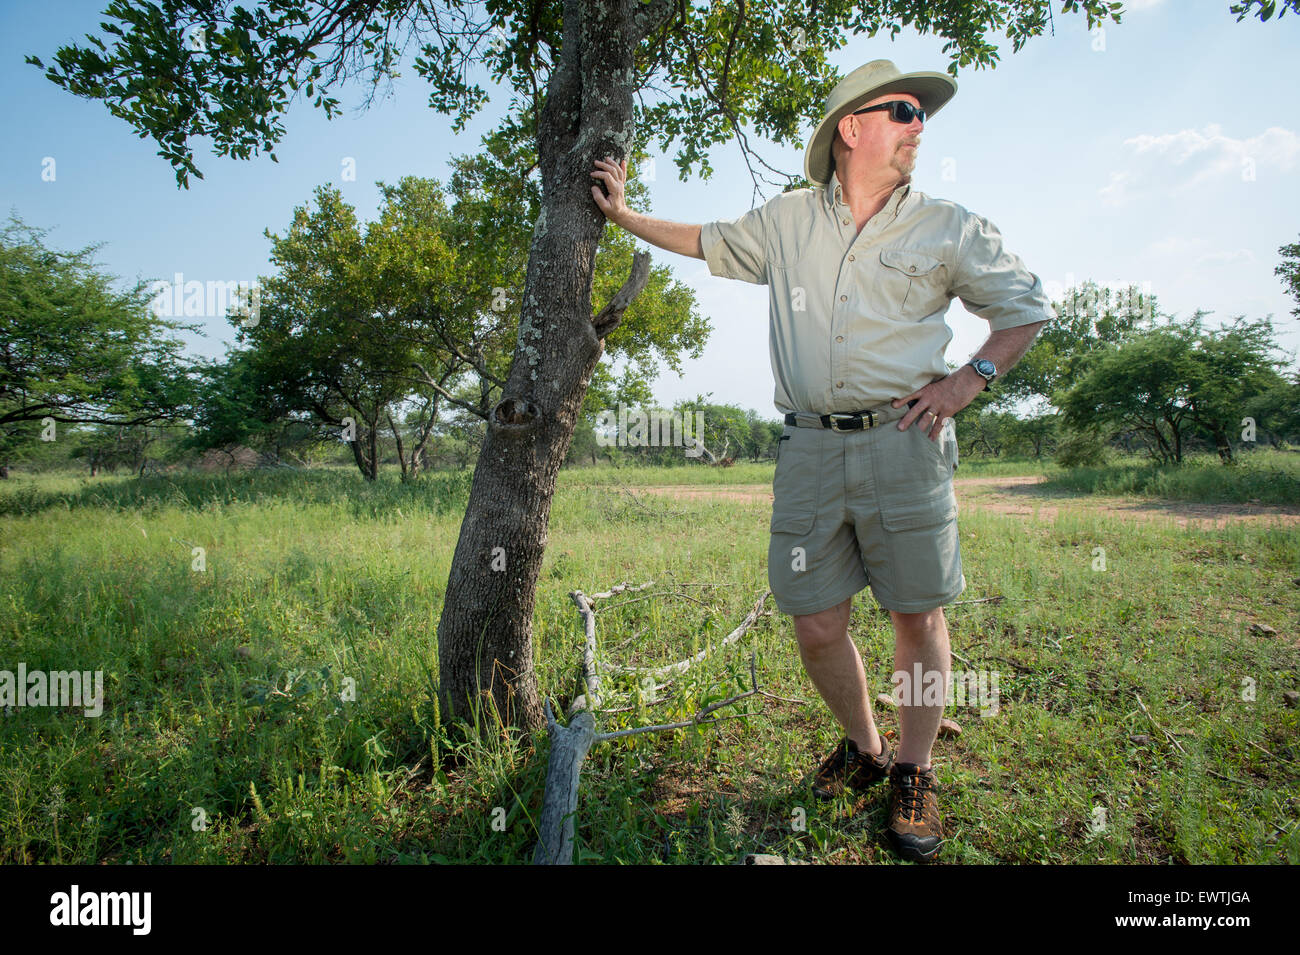 SOUTH AFRICA- Safari man posed by tree - Stock Image